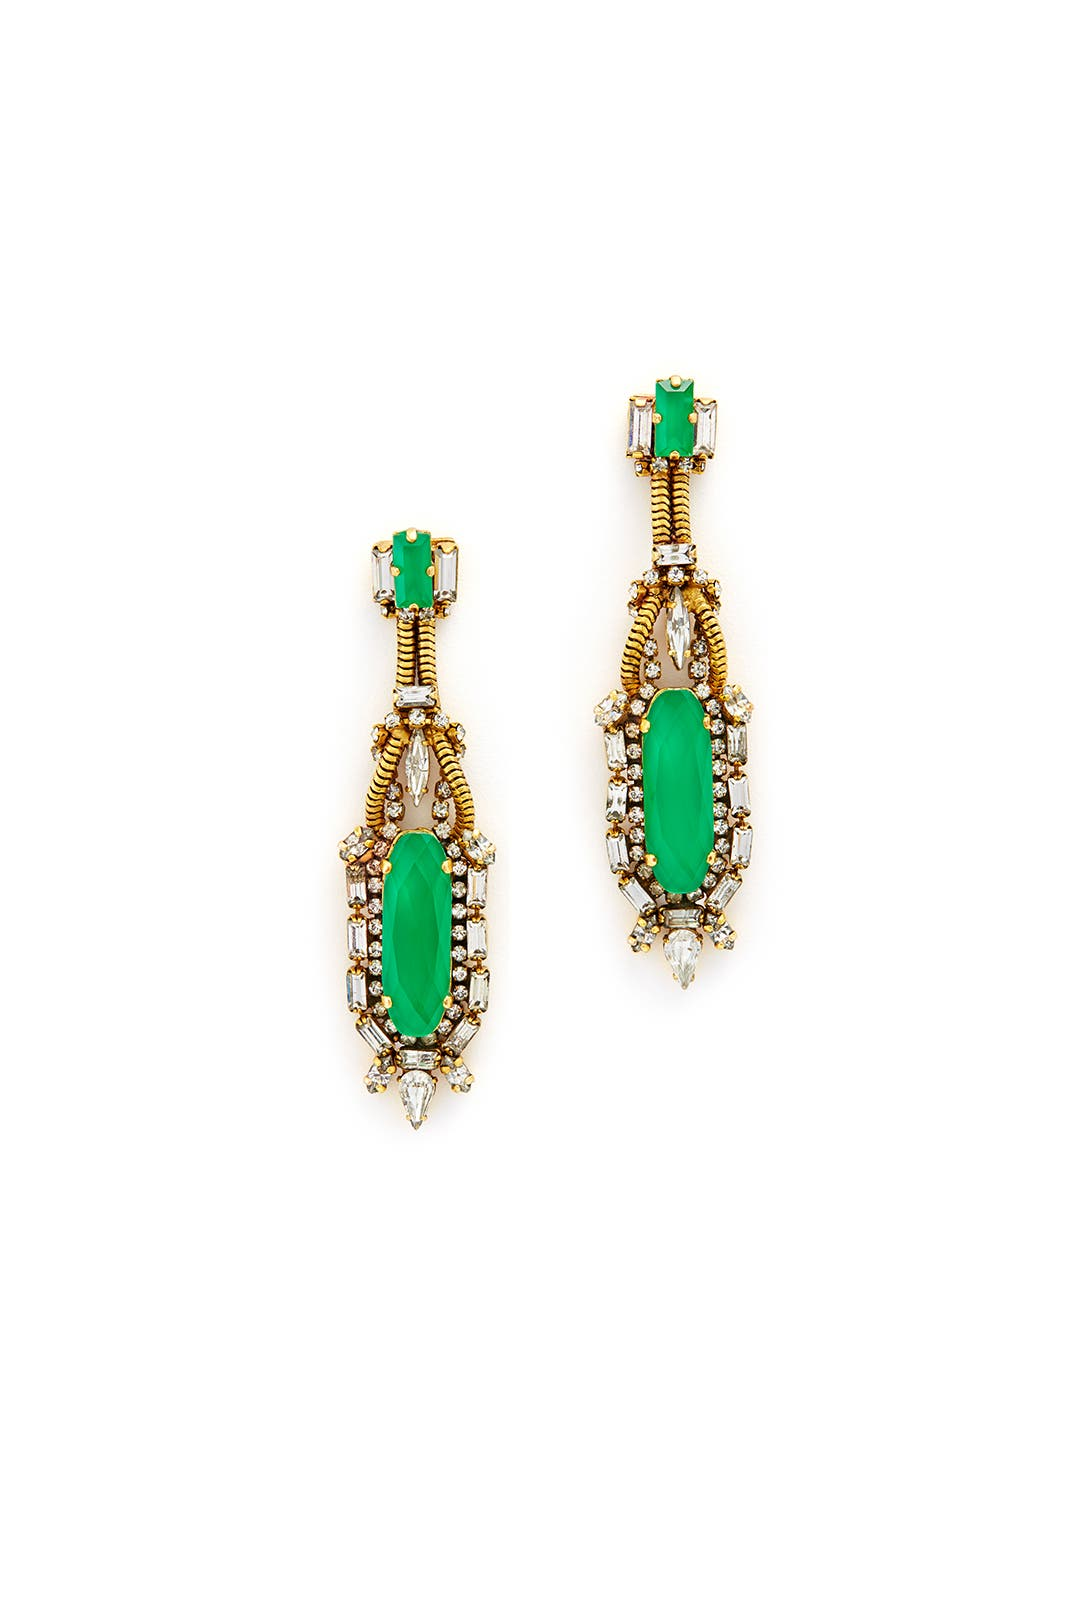 Yours to Keep Emerald Earrings by Erickson Beamon